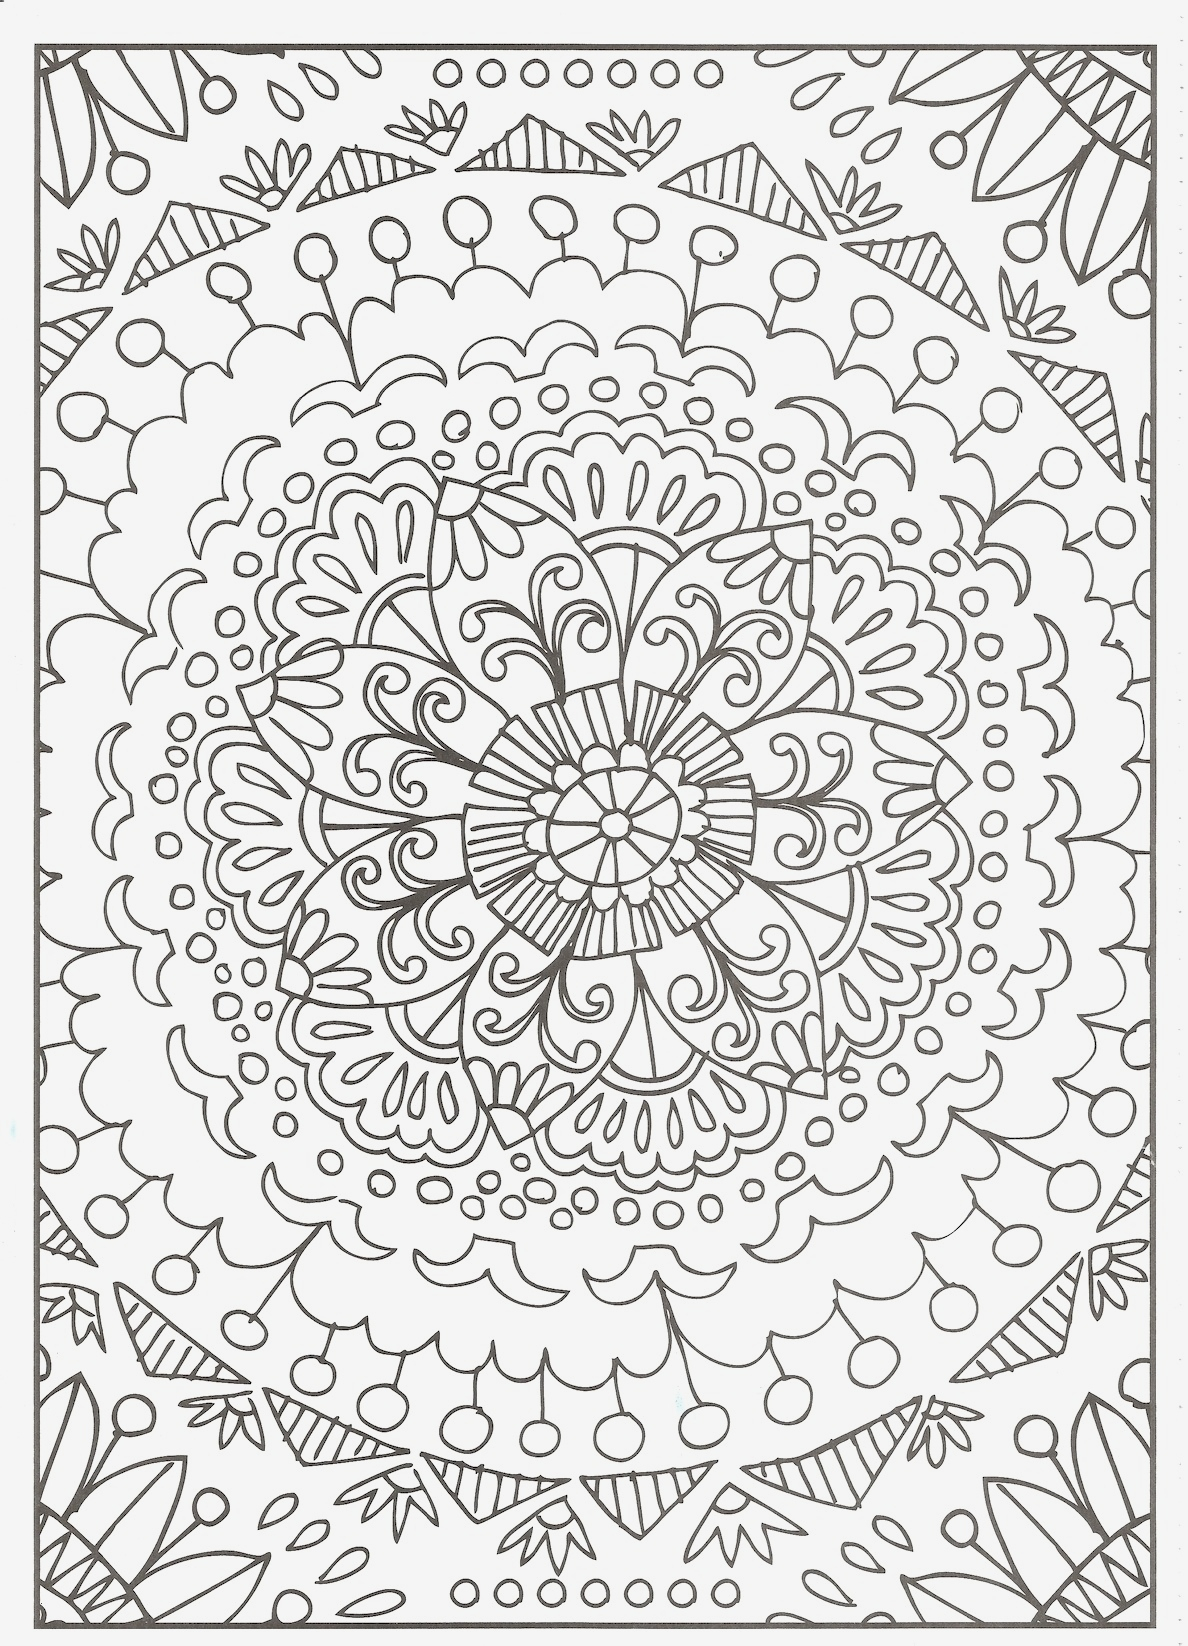 coloring book pages to print Collection-Awesome Coloring Books for Adults Easy and Fun Free Dog Coloring Pages New Best Od Dog 11-r